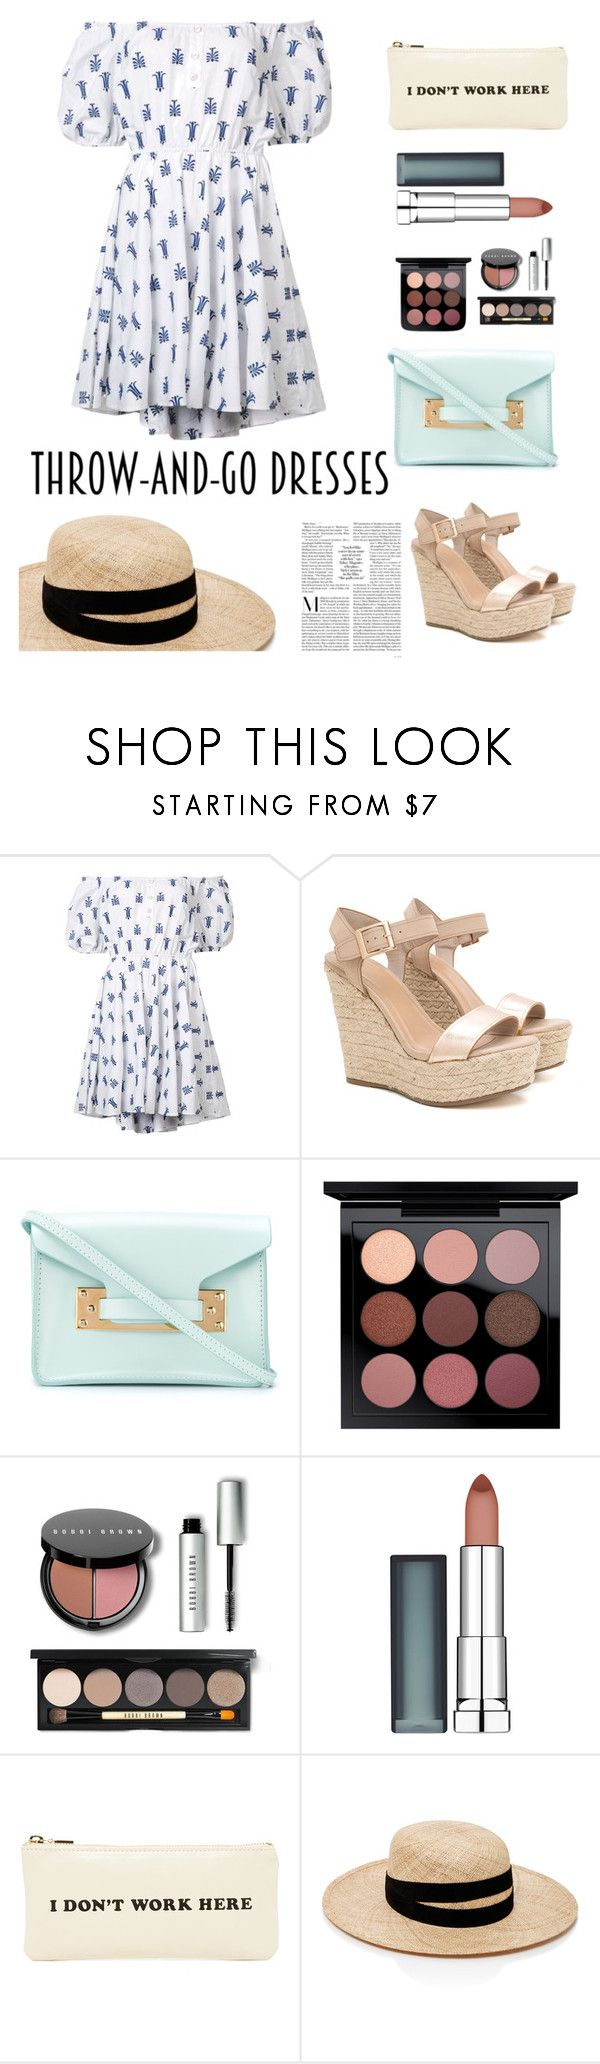 """""""Ready In 5"""" by wschurchill ❤ liked on Polyvore featuring Caroline Constas, Sophie Hulme, Bobbi Brown Cosmetics, Maybelline, ban.do and Janessa Leone"""